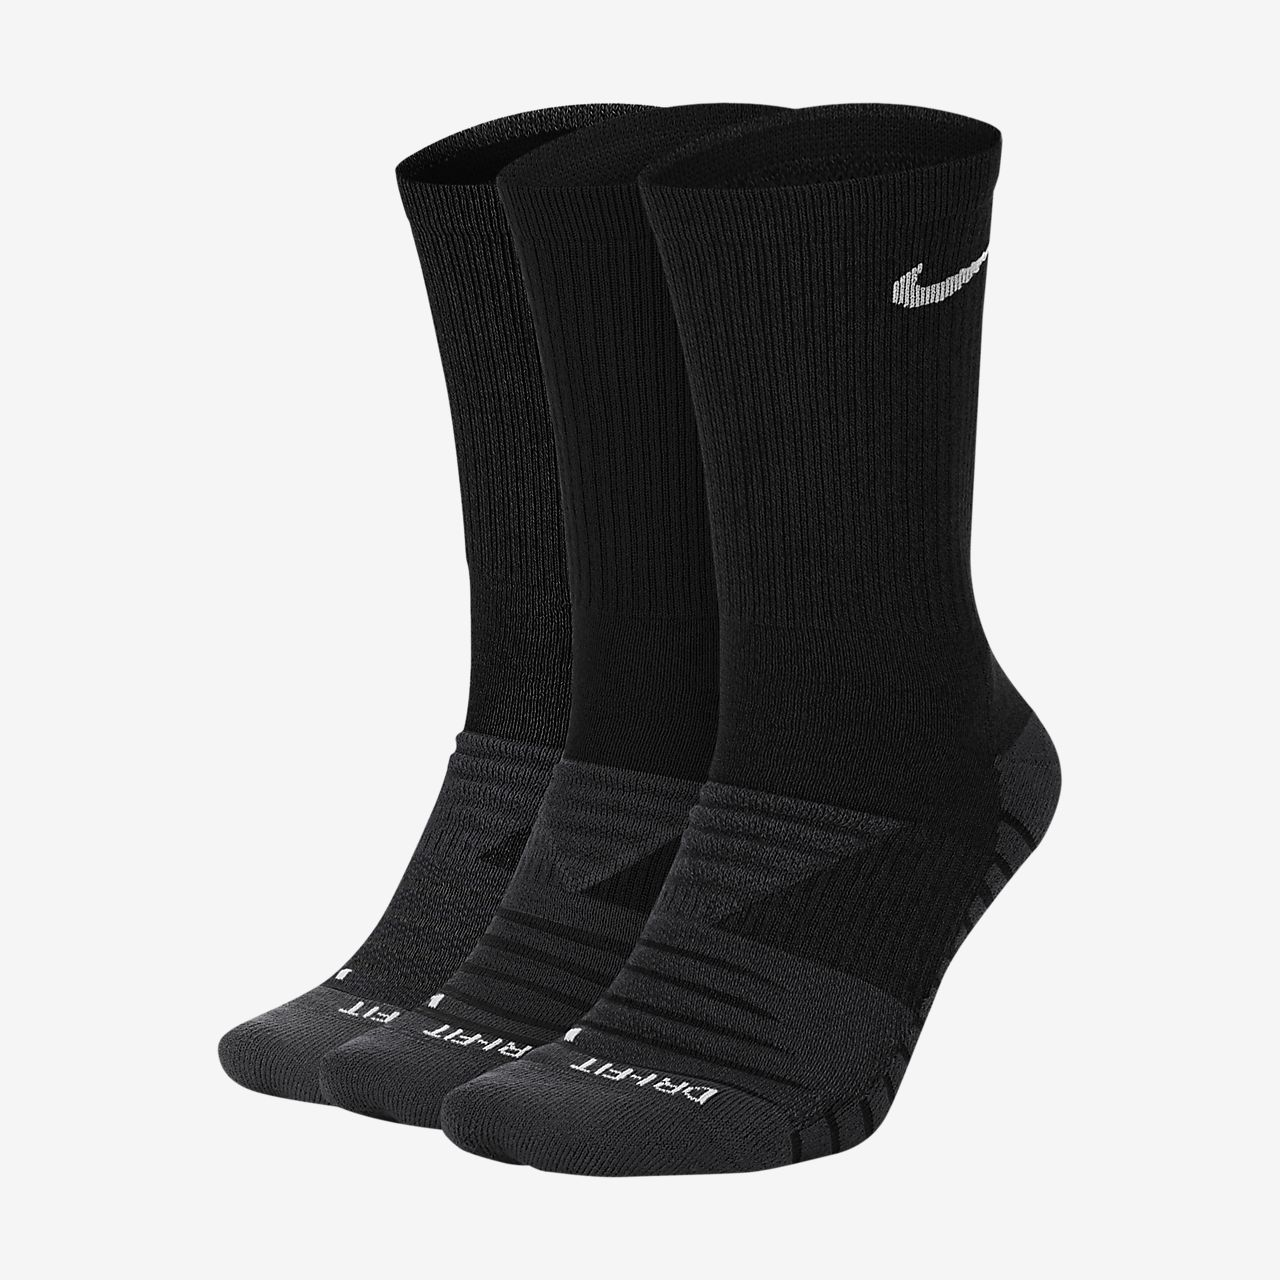 Chaussettes de training mi-mollet Nike Everyday Max Cushioned (3 paires)